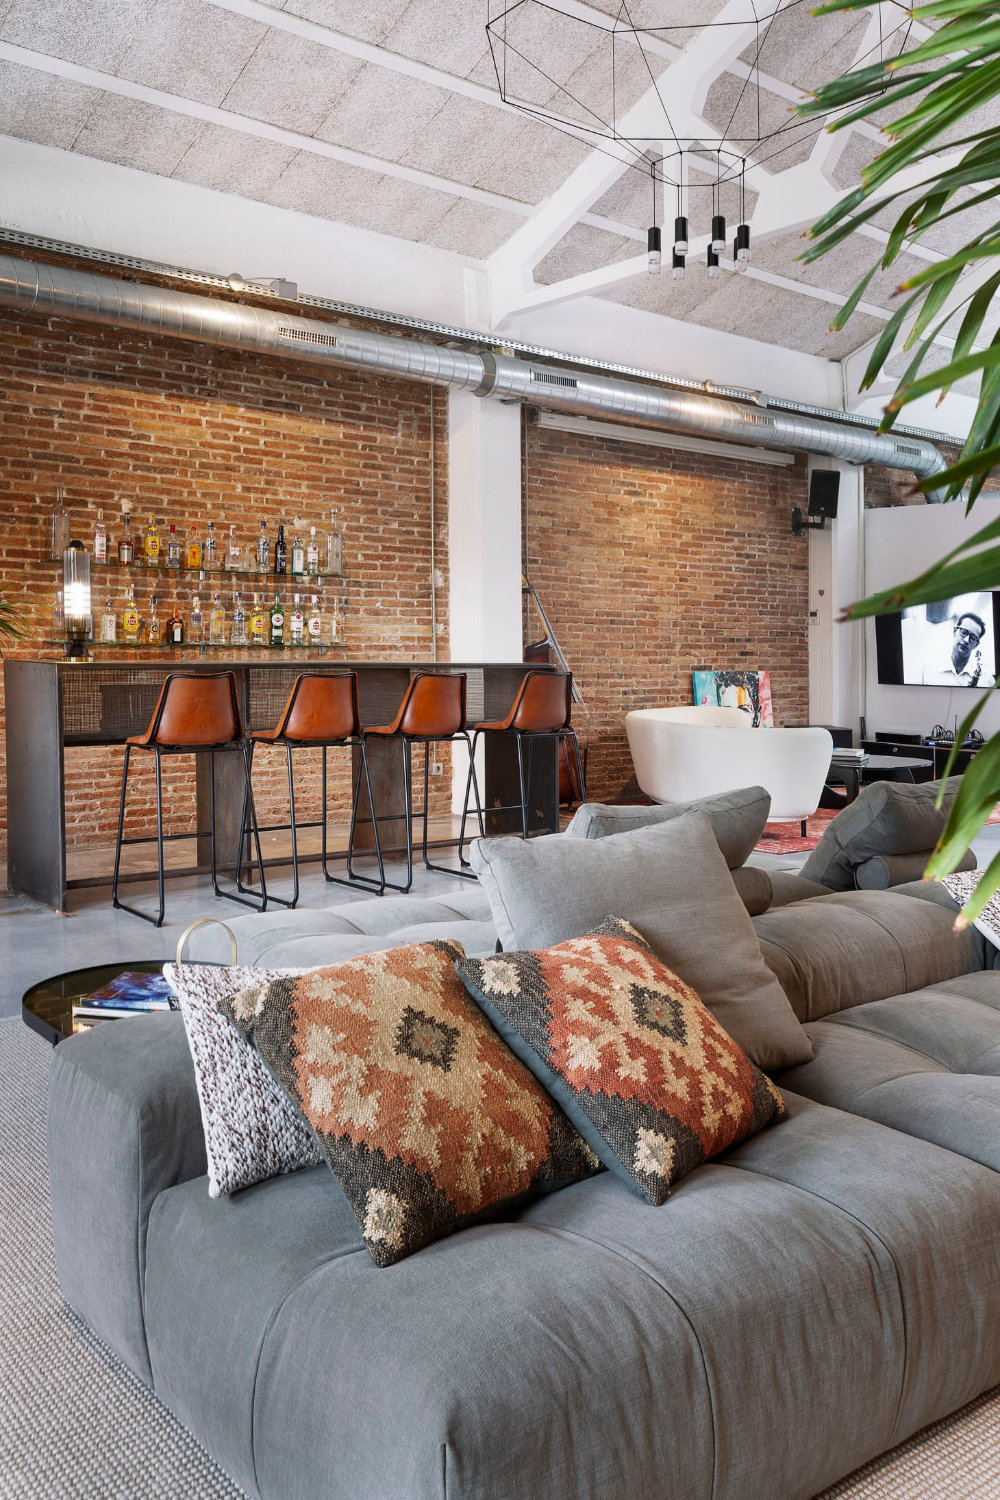 This Cool Spanish Home Makes A Stylish Case For Modern Loft Living Interior Design Apartment Living Room Industrial Interior Design Living Room Loft Living